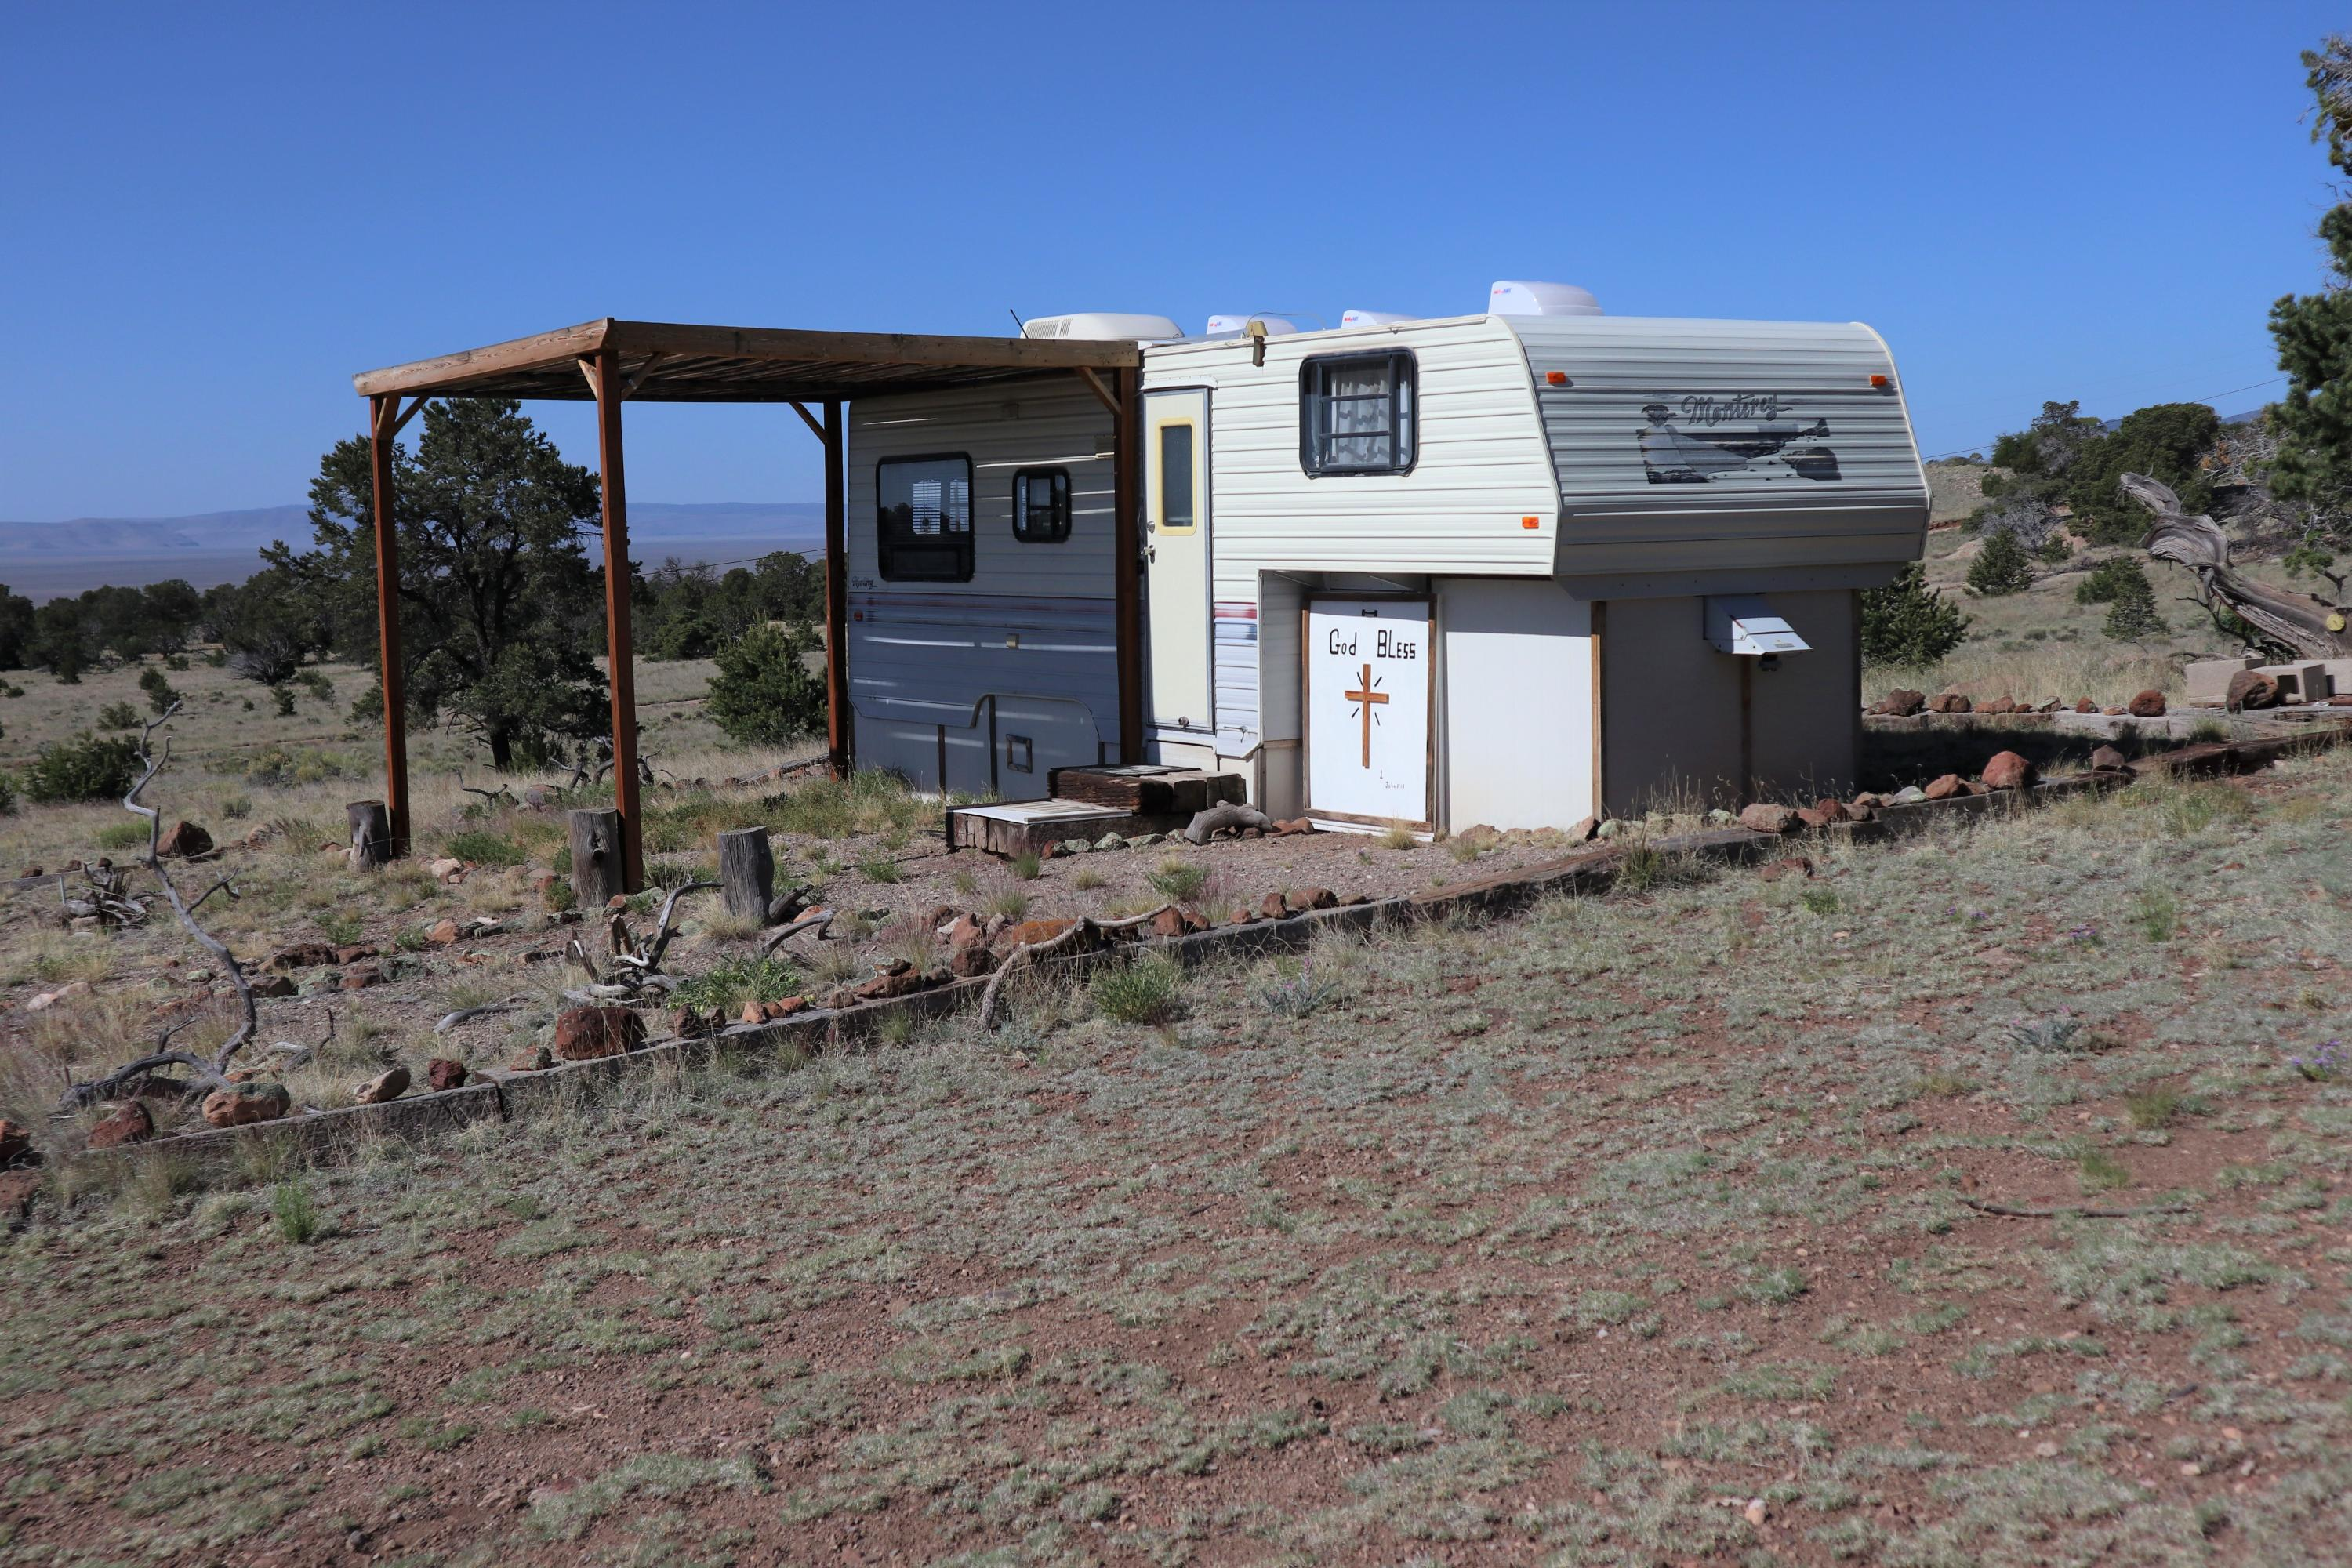 193 AGUA FRIA Trail, Datil, NM 87821 - Datil, NM real estate listing